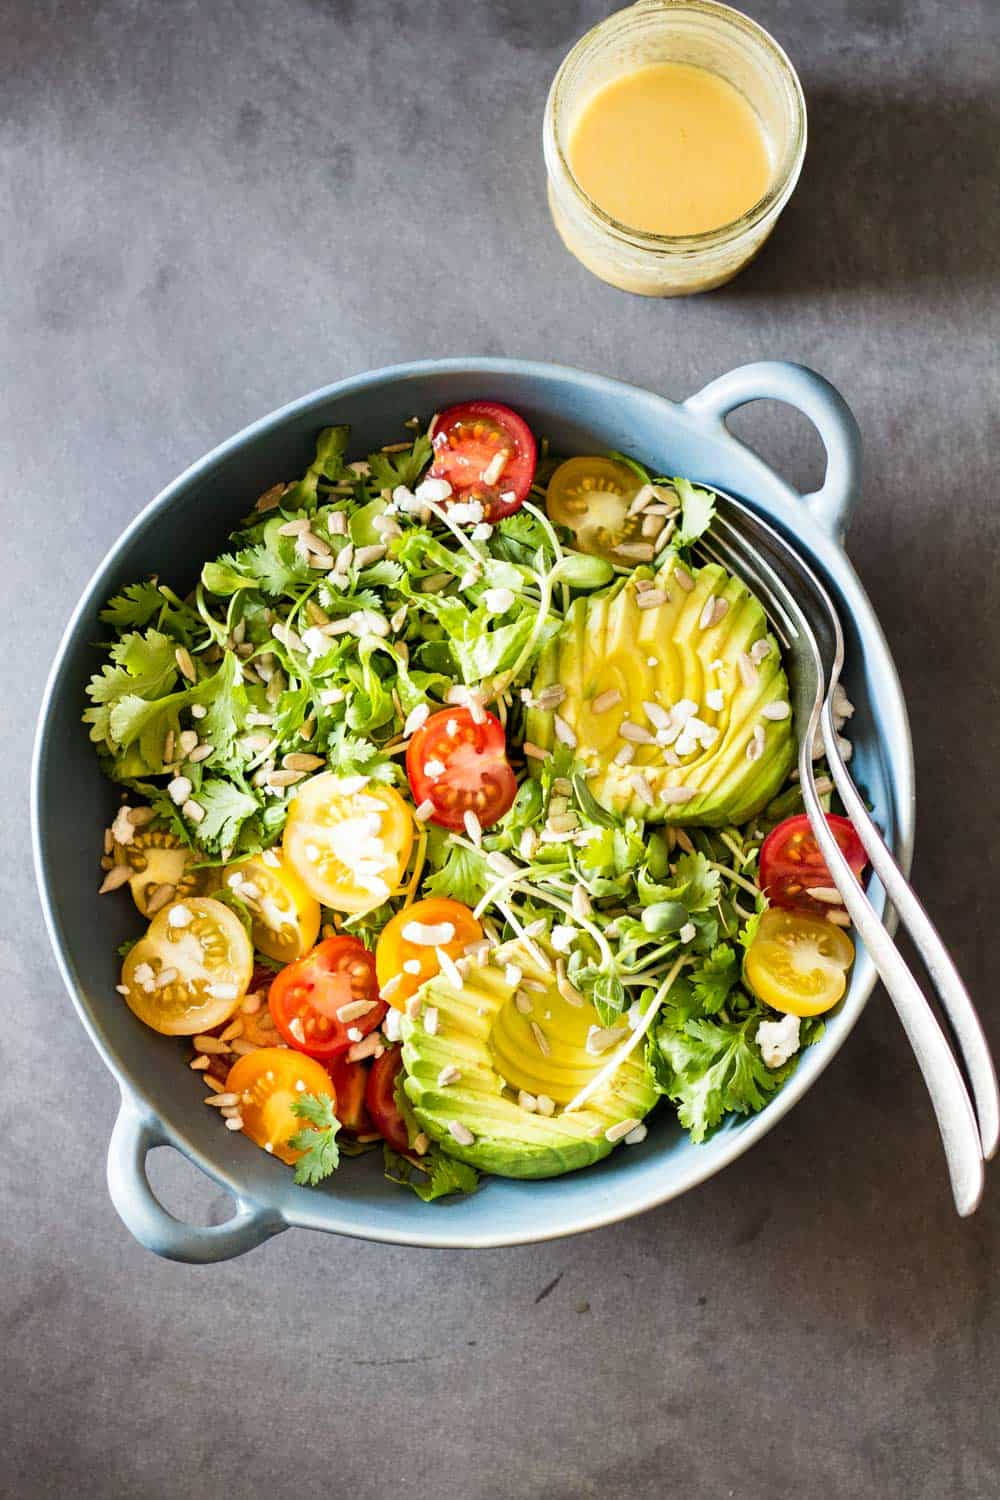 Top view of Mexican-Style Side Salad in a blue ceramic bowl with a fork and a spoon, and a jar of honey lime dressing.